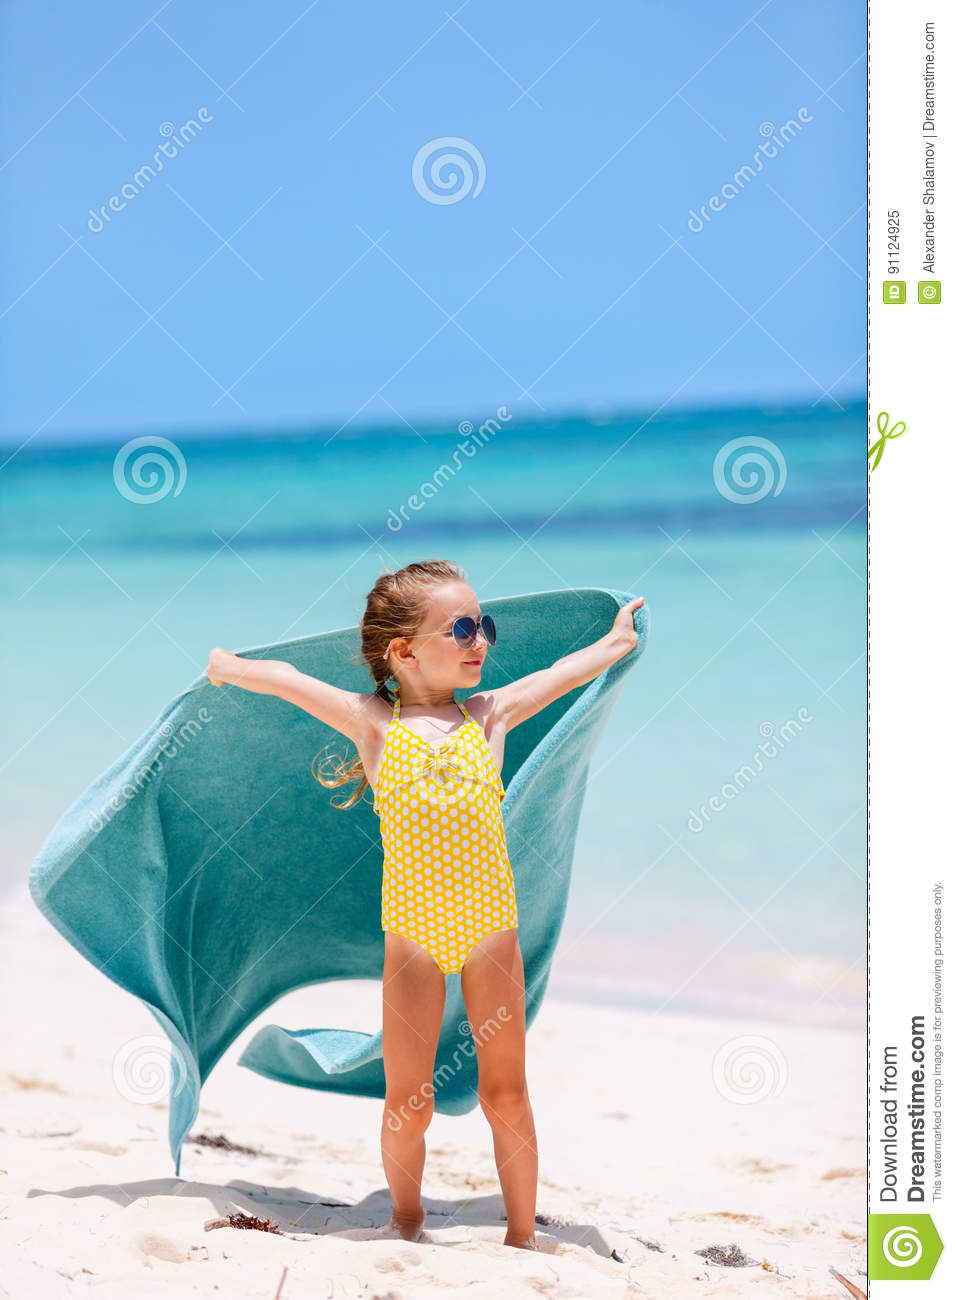 c1b31a237ee Cute Little Girl Having Fun On Beach Vacation Stock Image - Image of ...